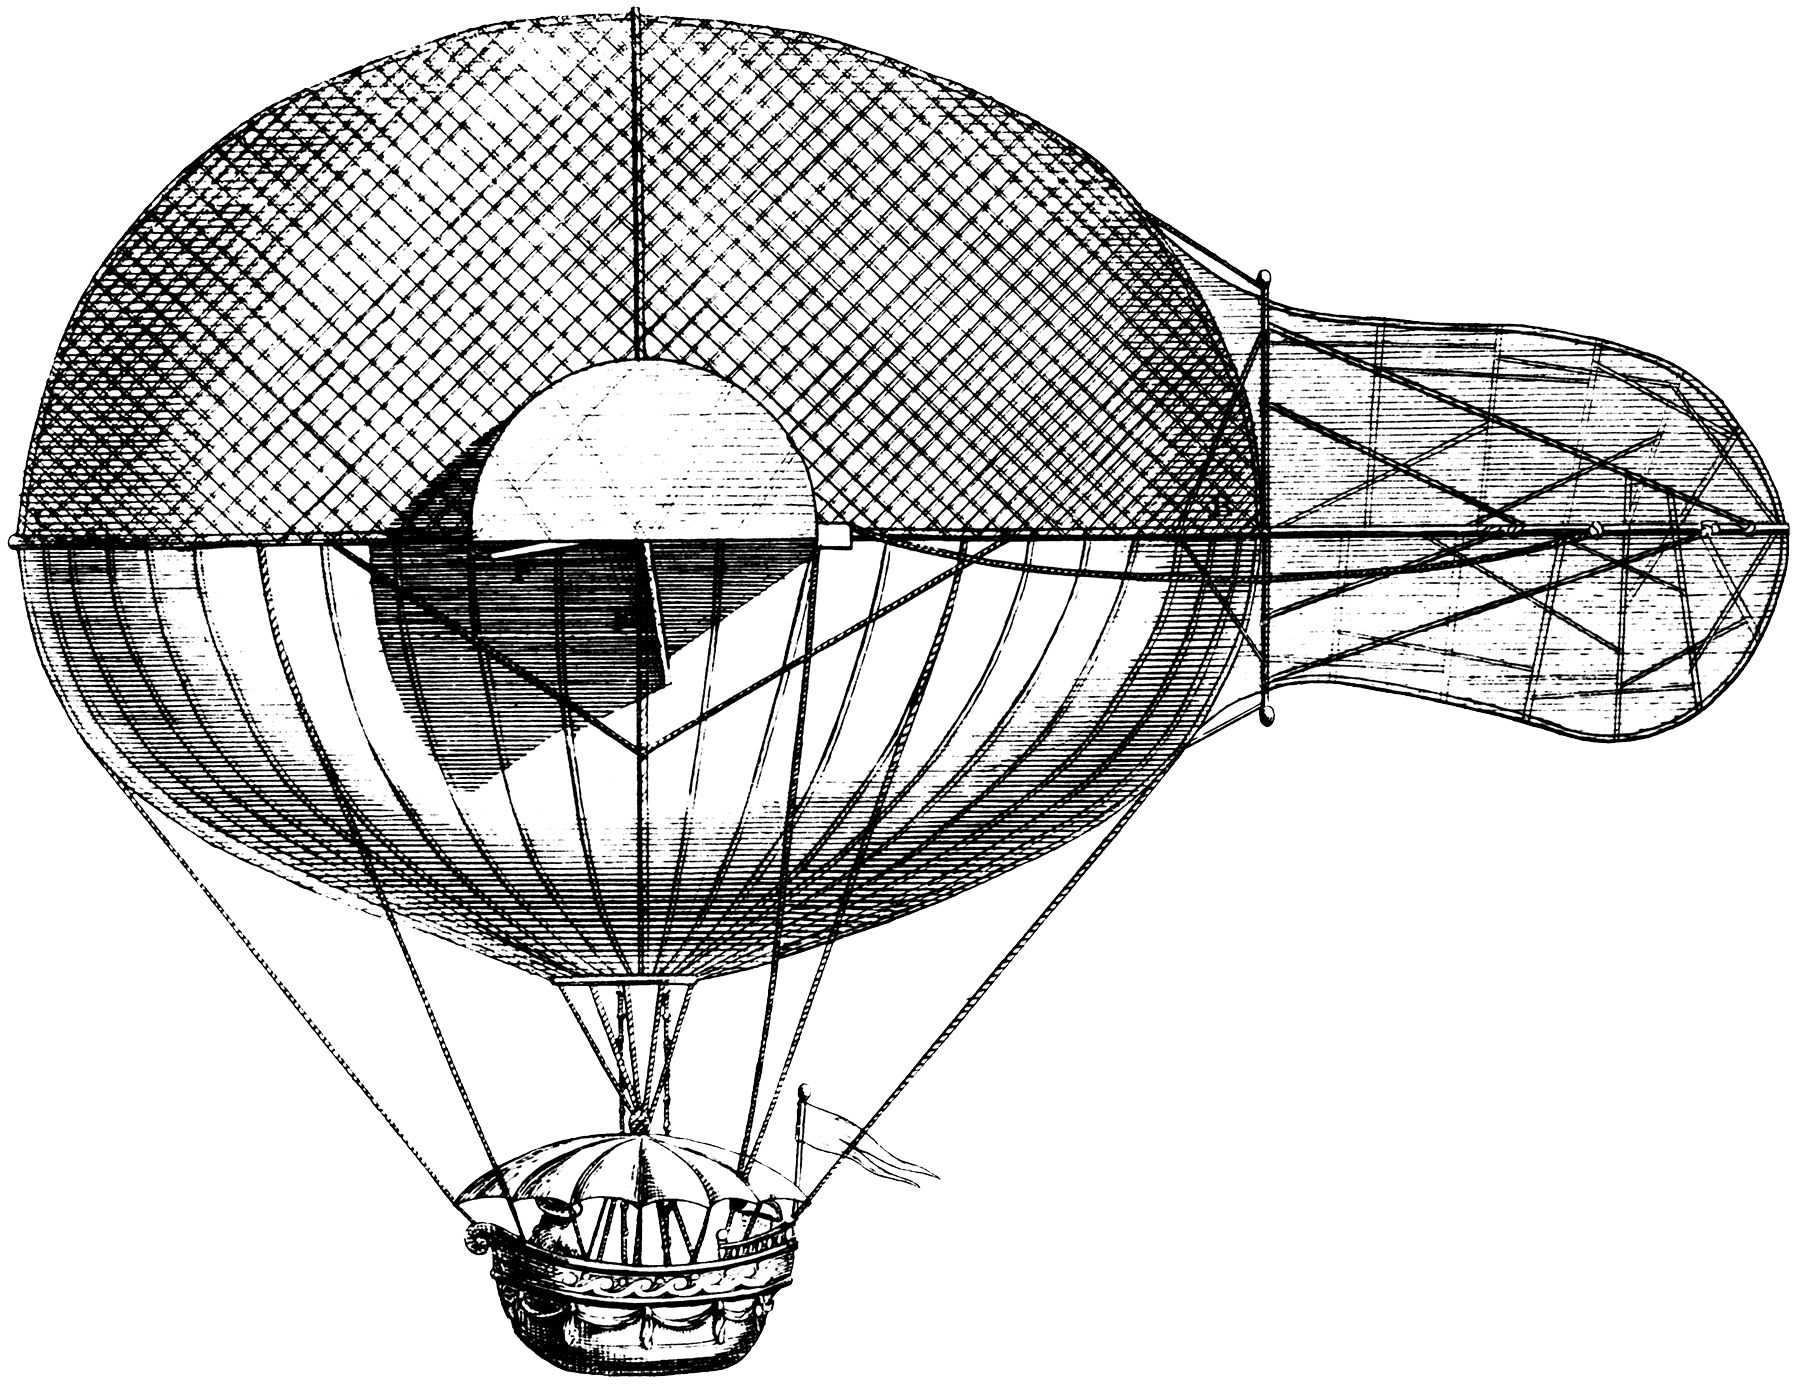 free png Airship Clipart images transparent